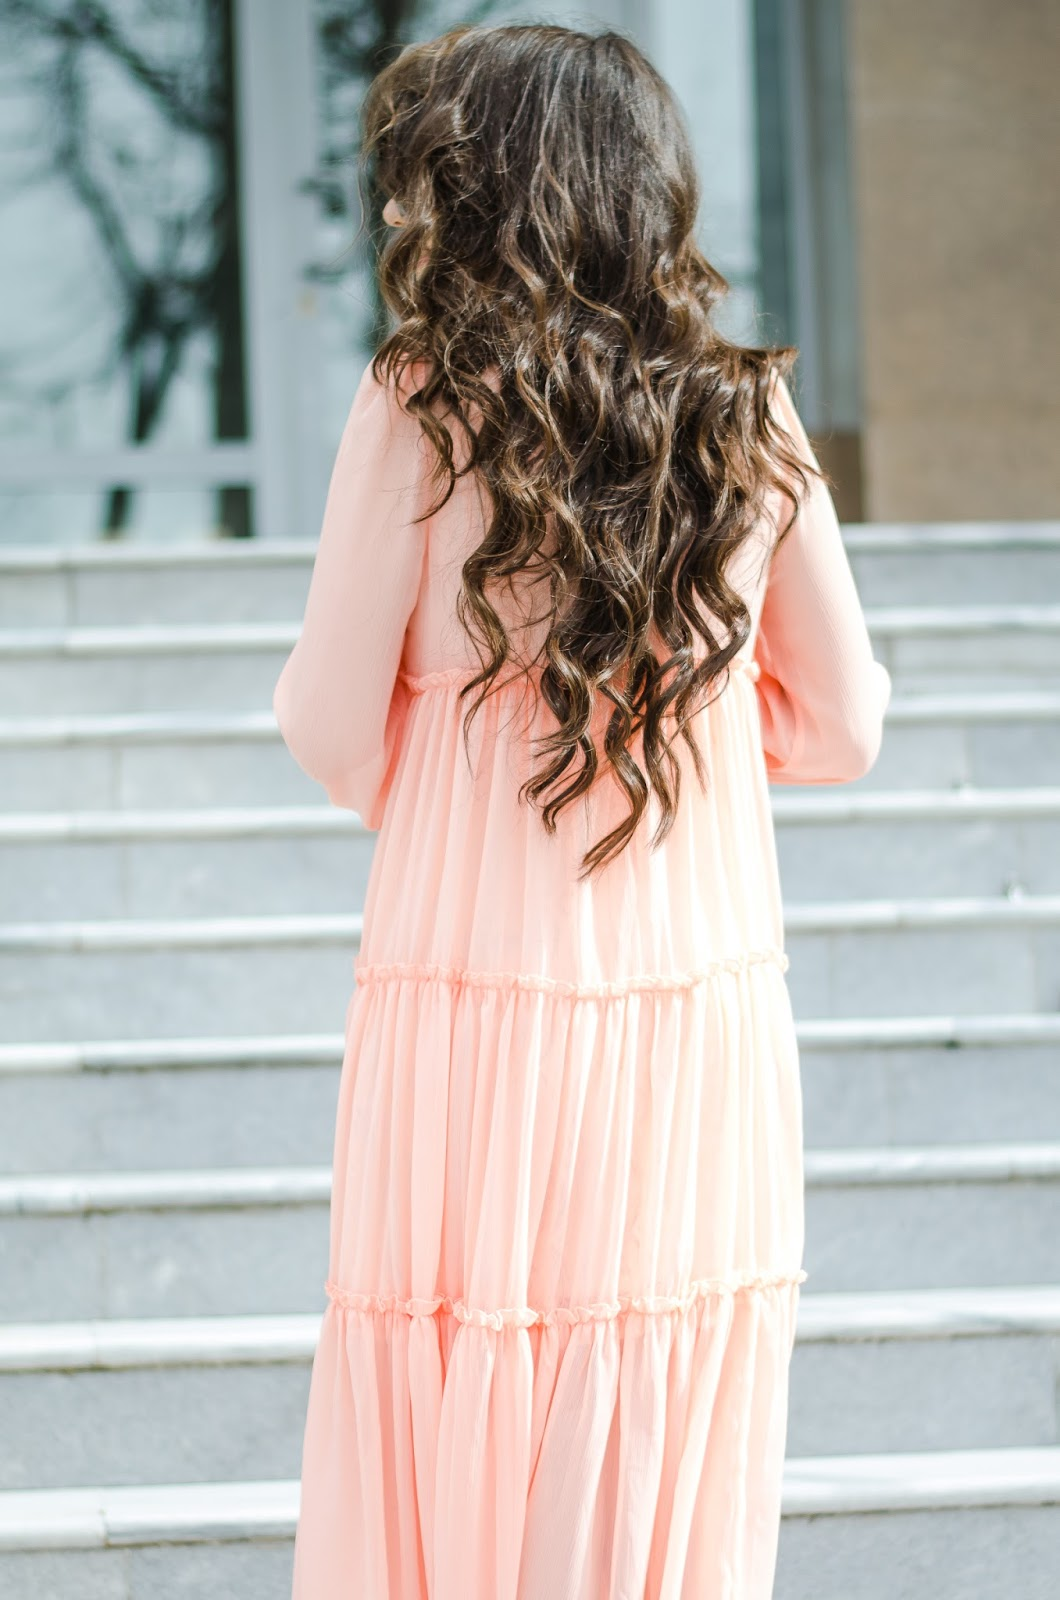 fashion-blogger-diyorasnotes-diyora-beta-midi-dress-pink-dress-metallic-heels-curly-hair